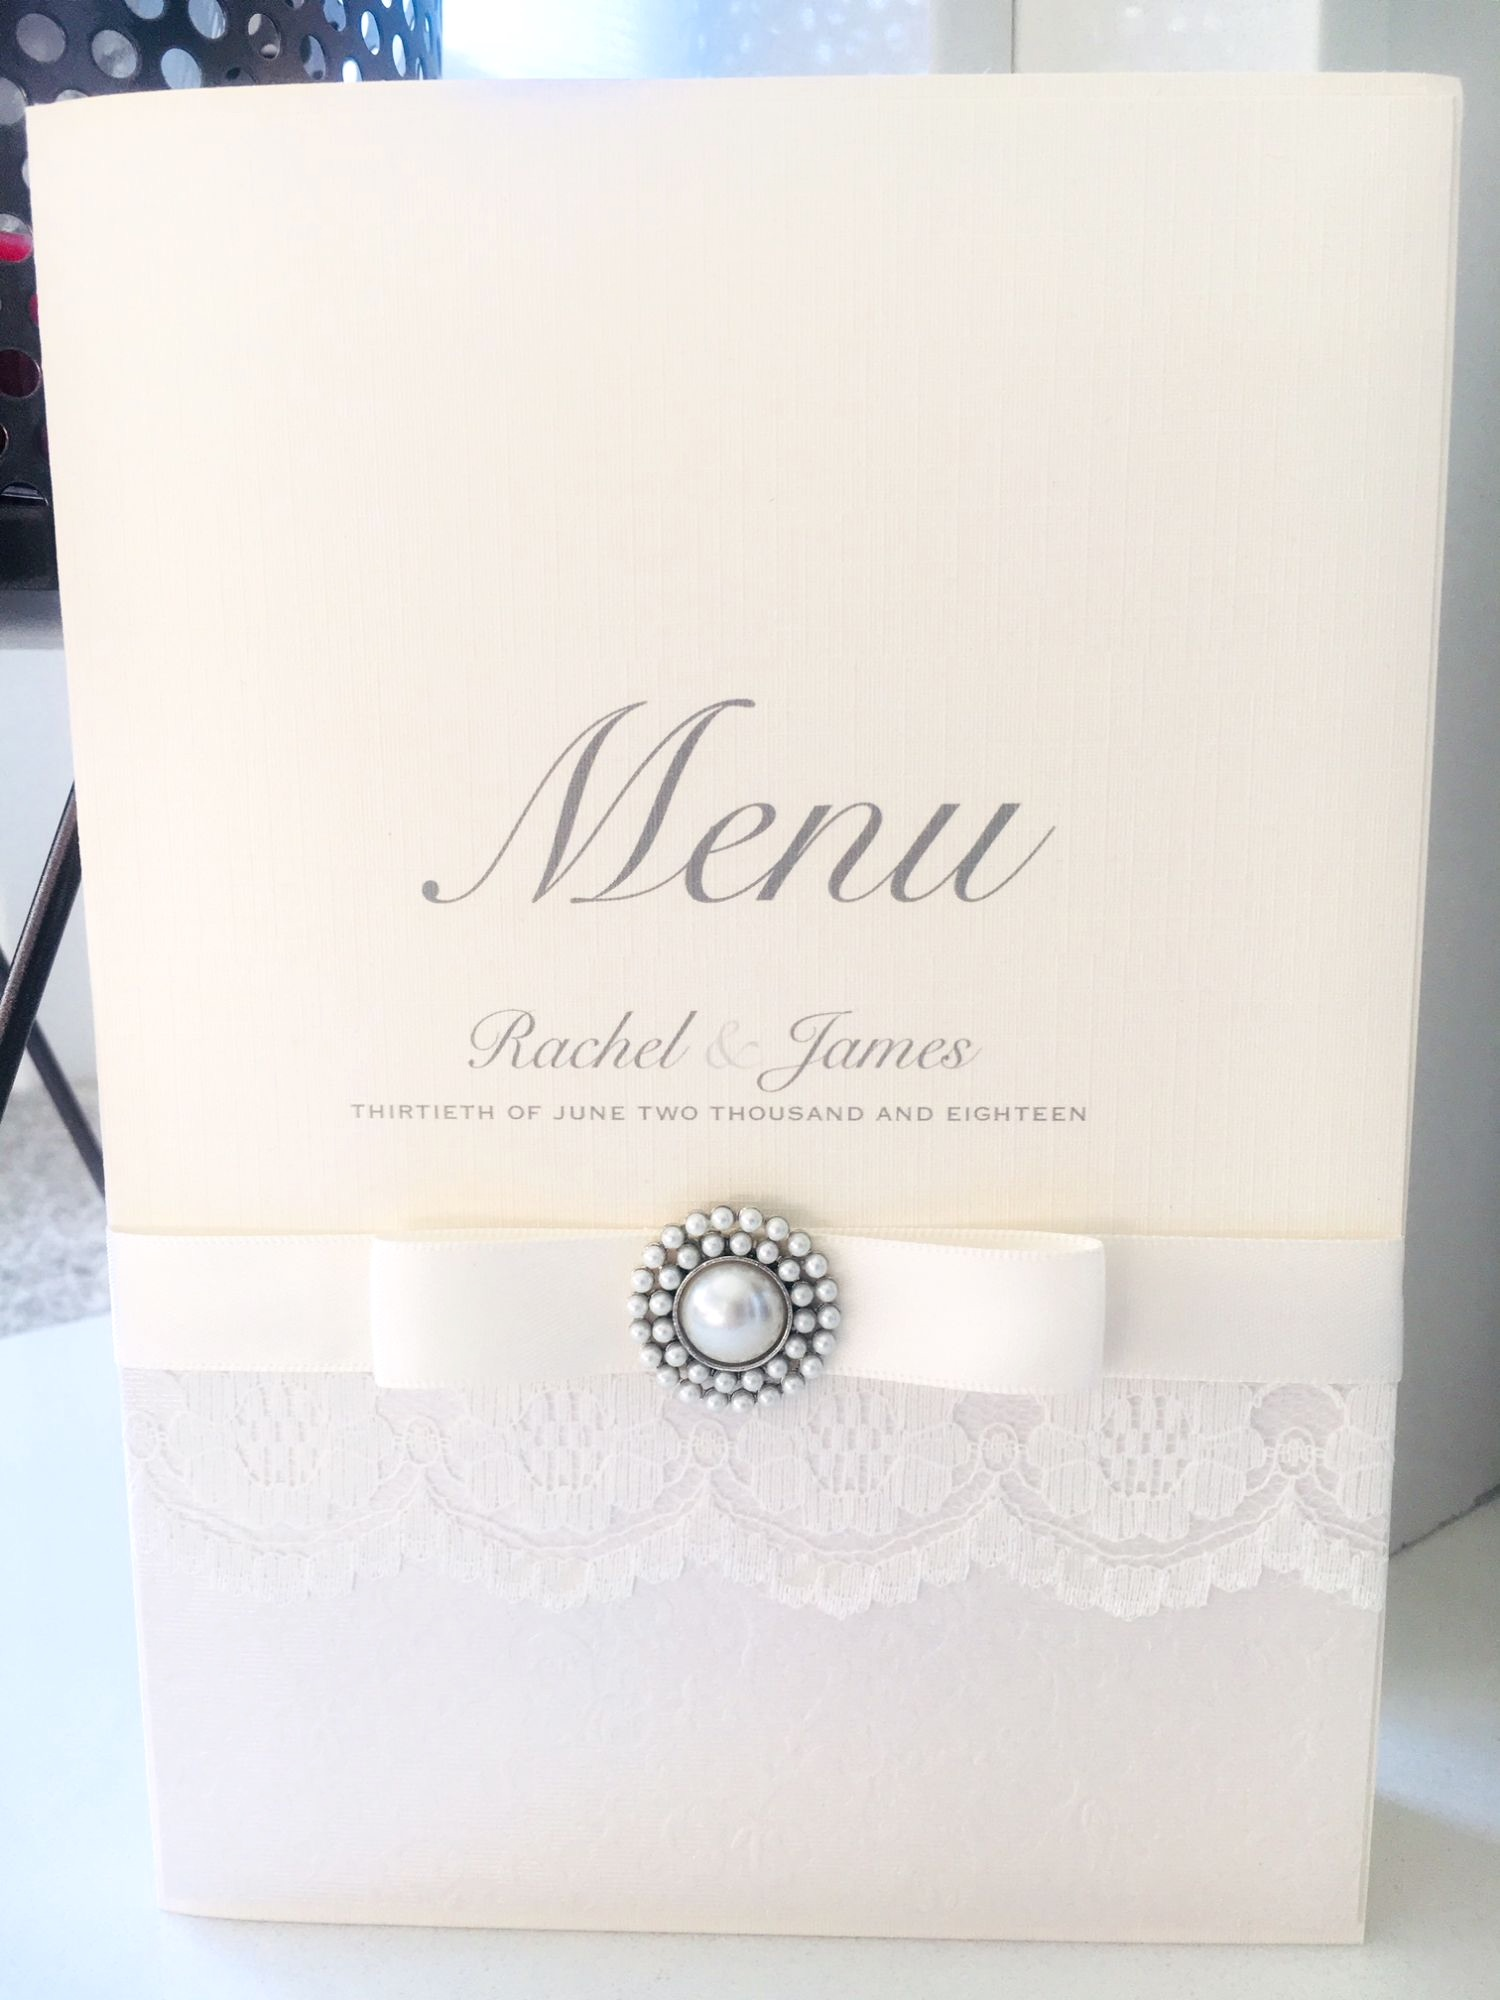 Luxury wedding breakfast menu with silver ribbon and vintage brooch